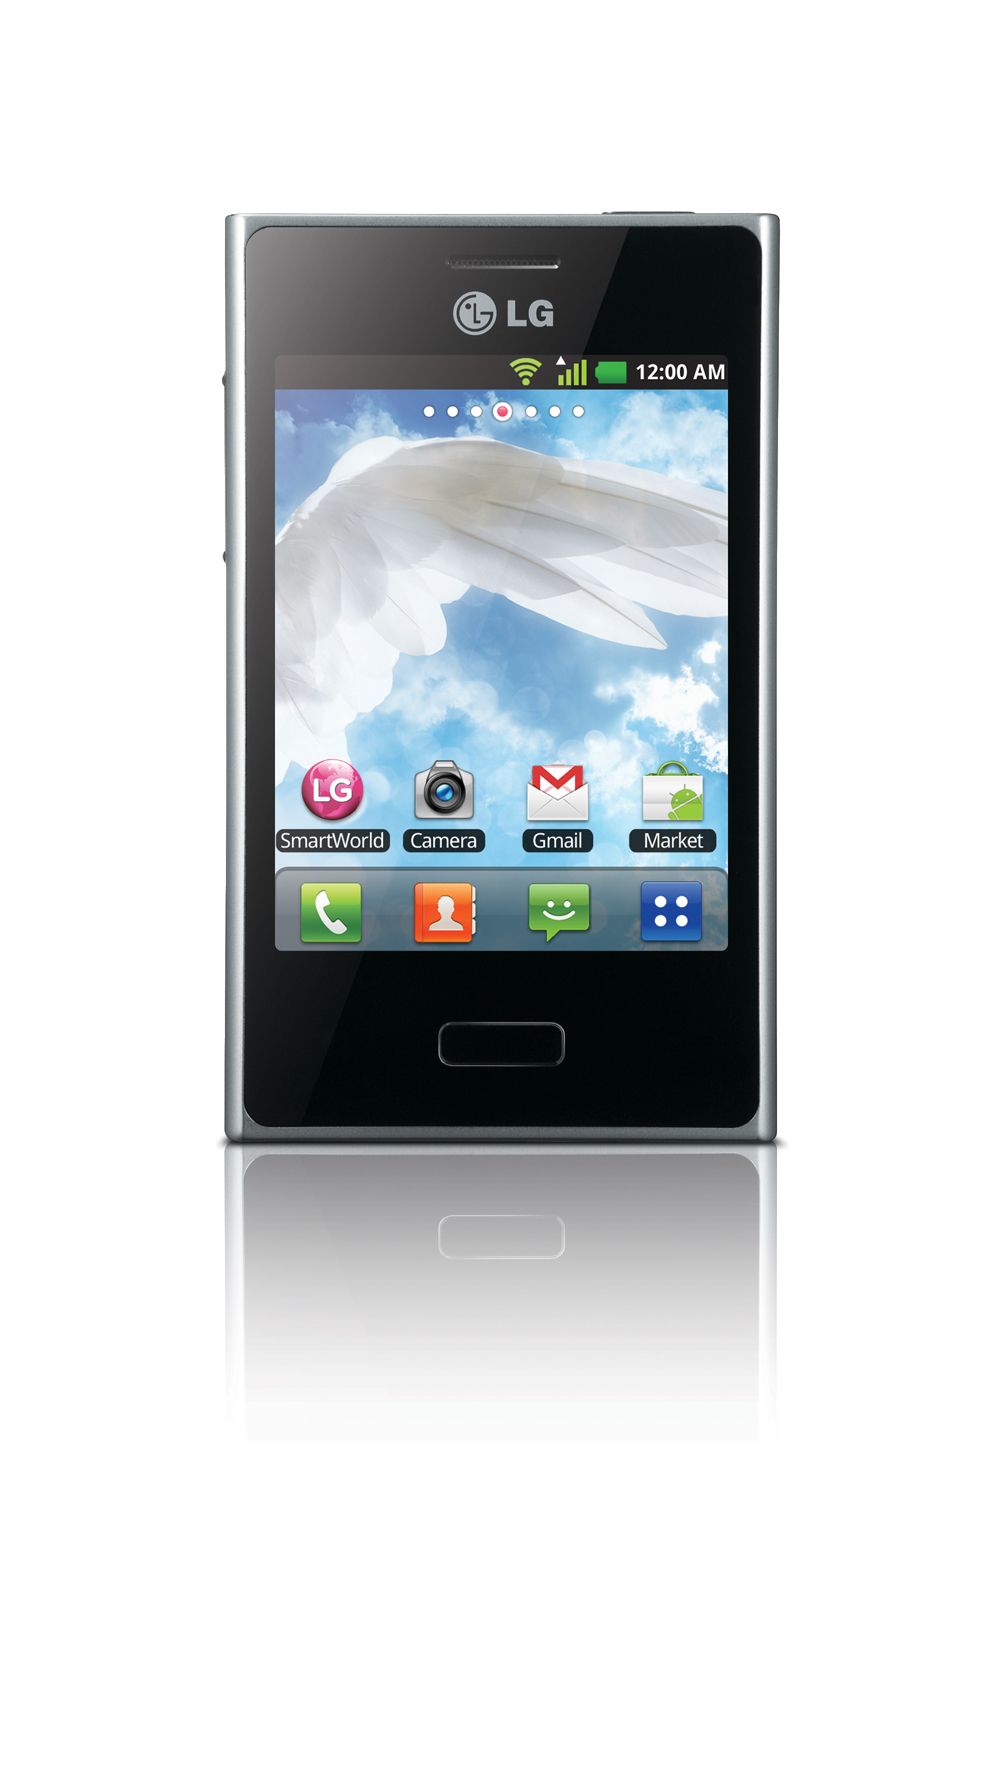 Close view of LG's New Optimus L3 smartphone